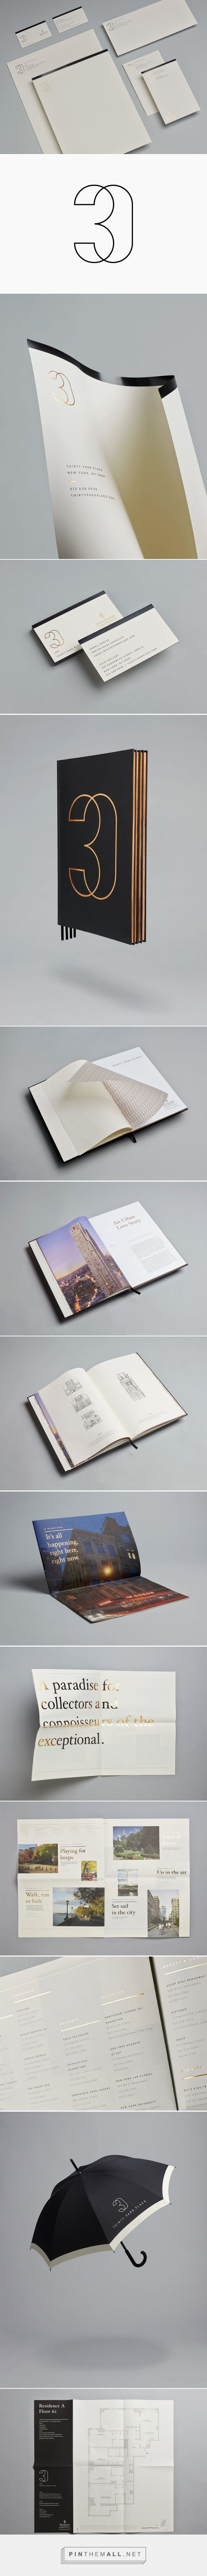 New Logo for 30 Park Place by Mother Design — BP&O... - a grouped images picture - Pin Them All